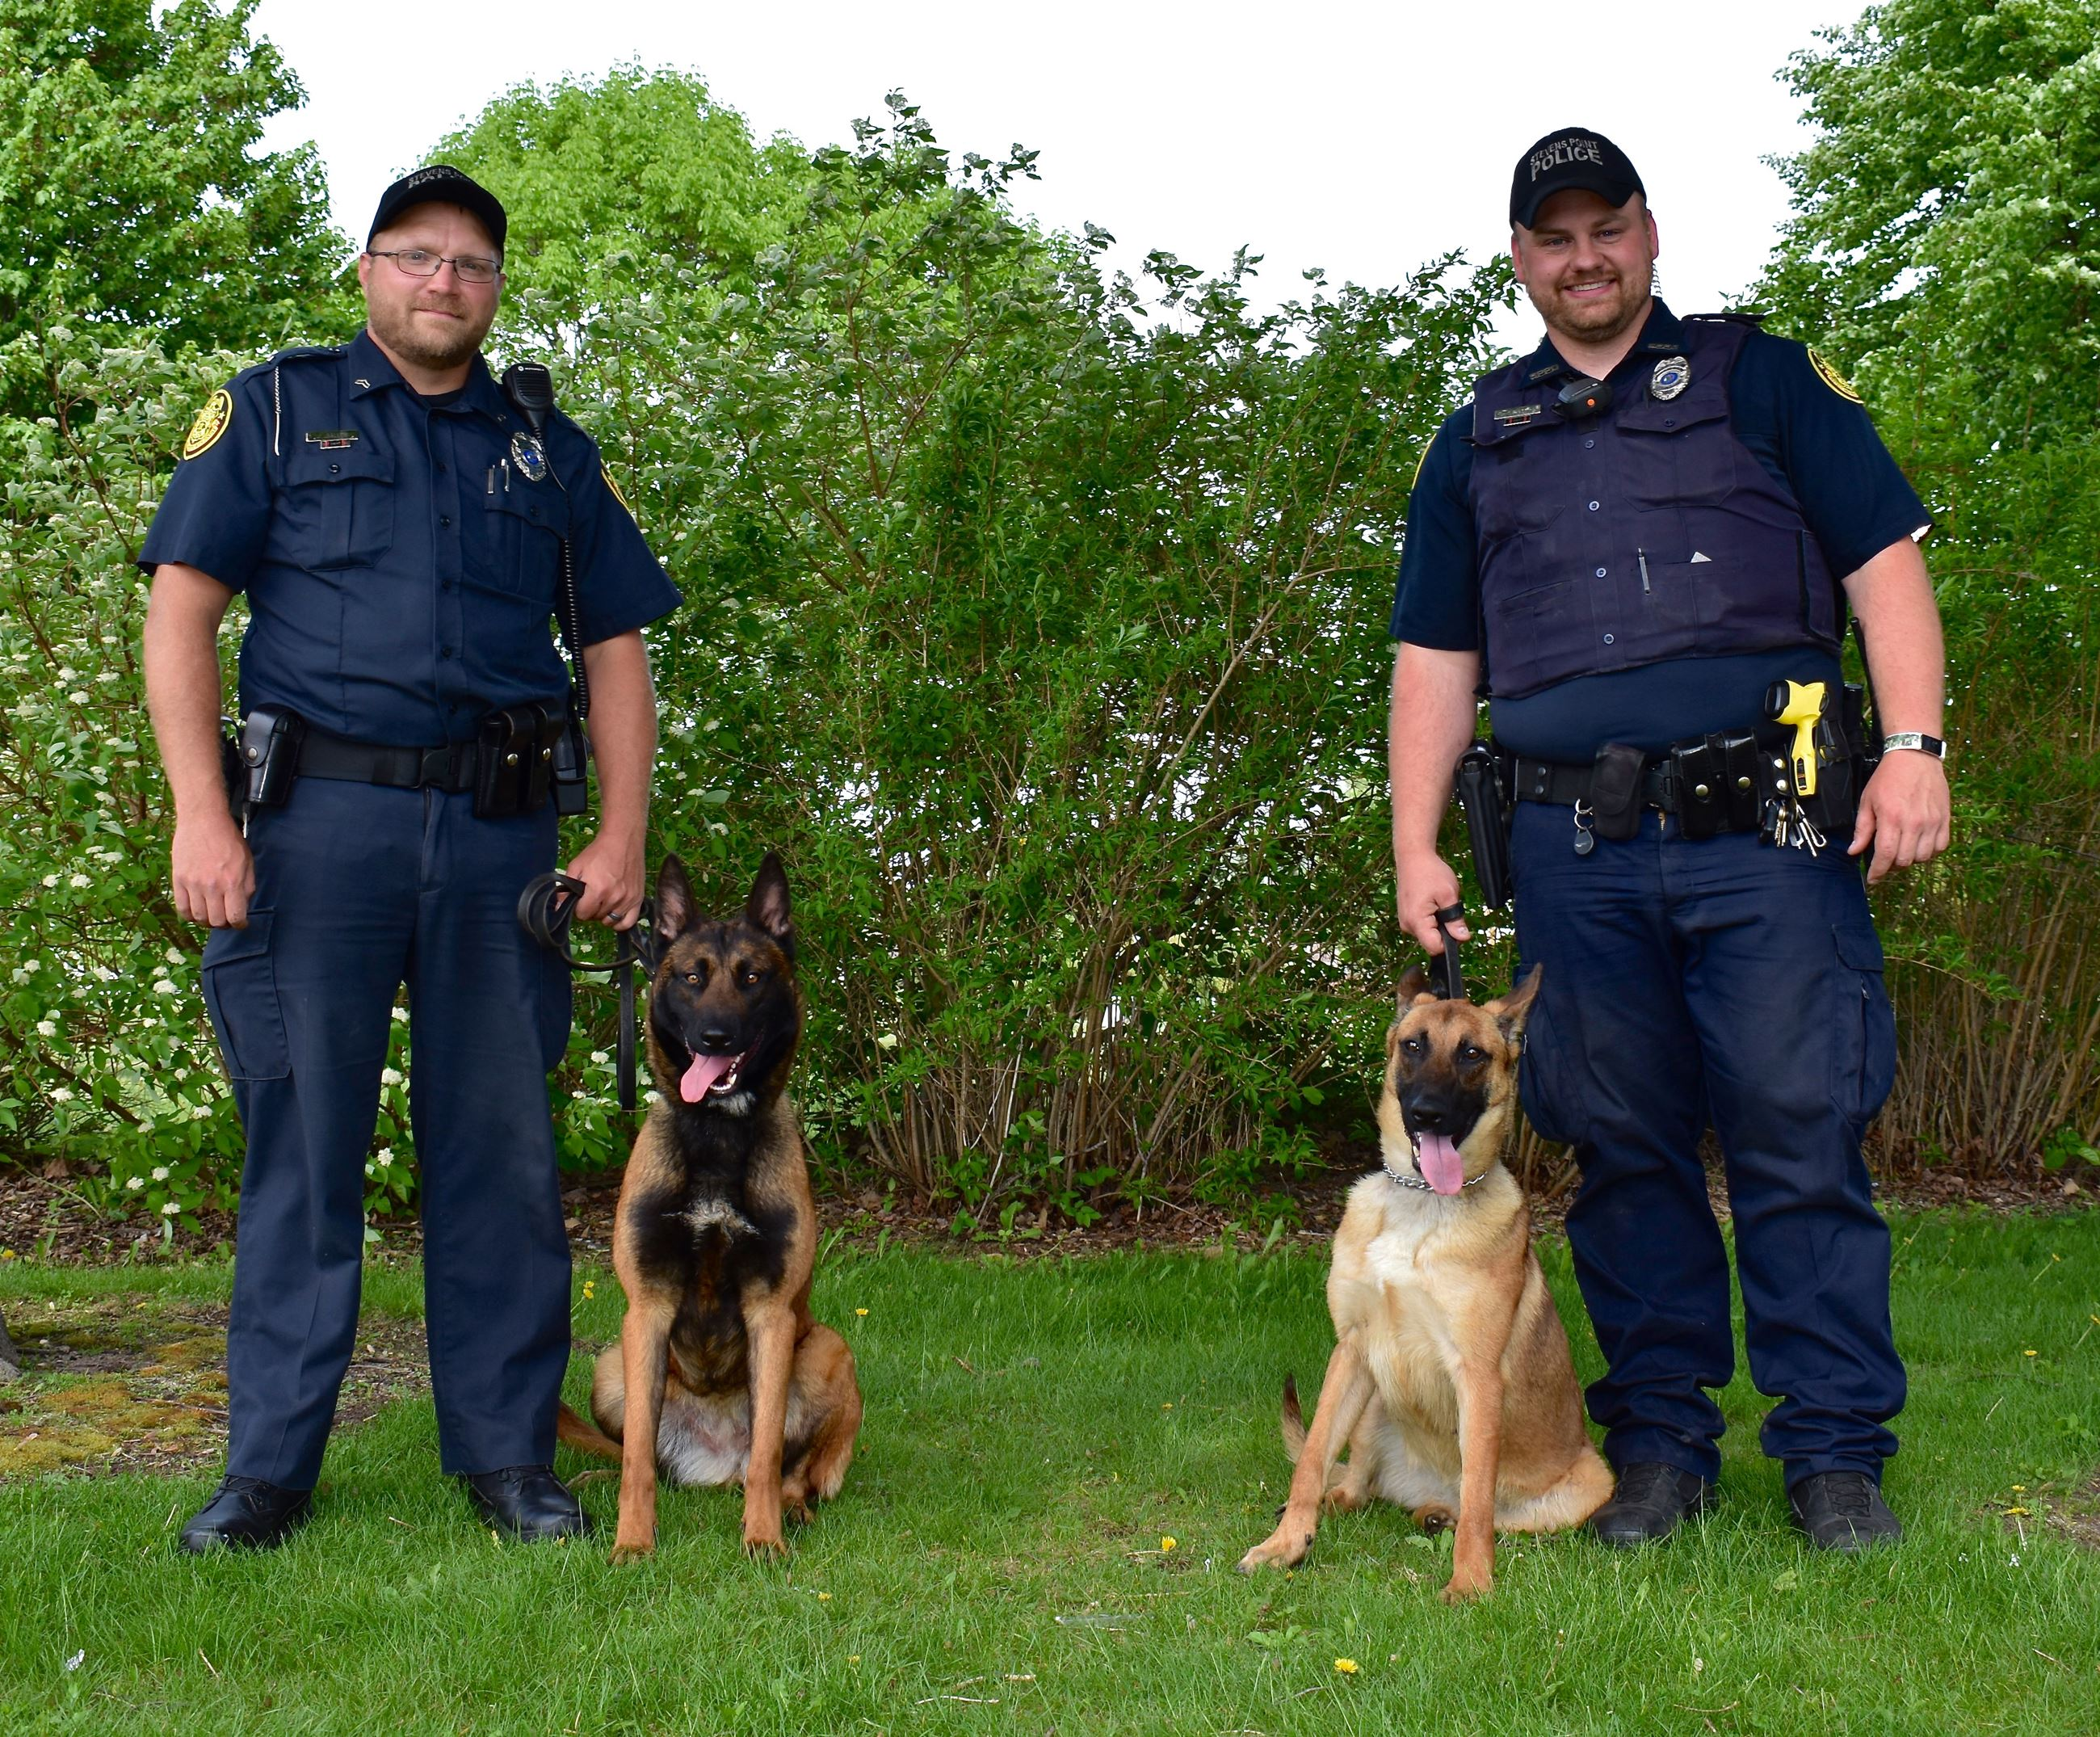 K-9 Officers and their handlers